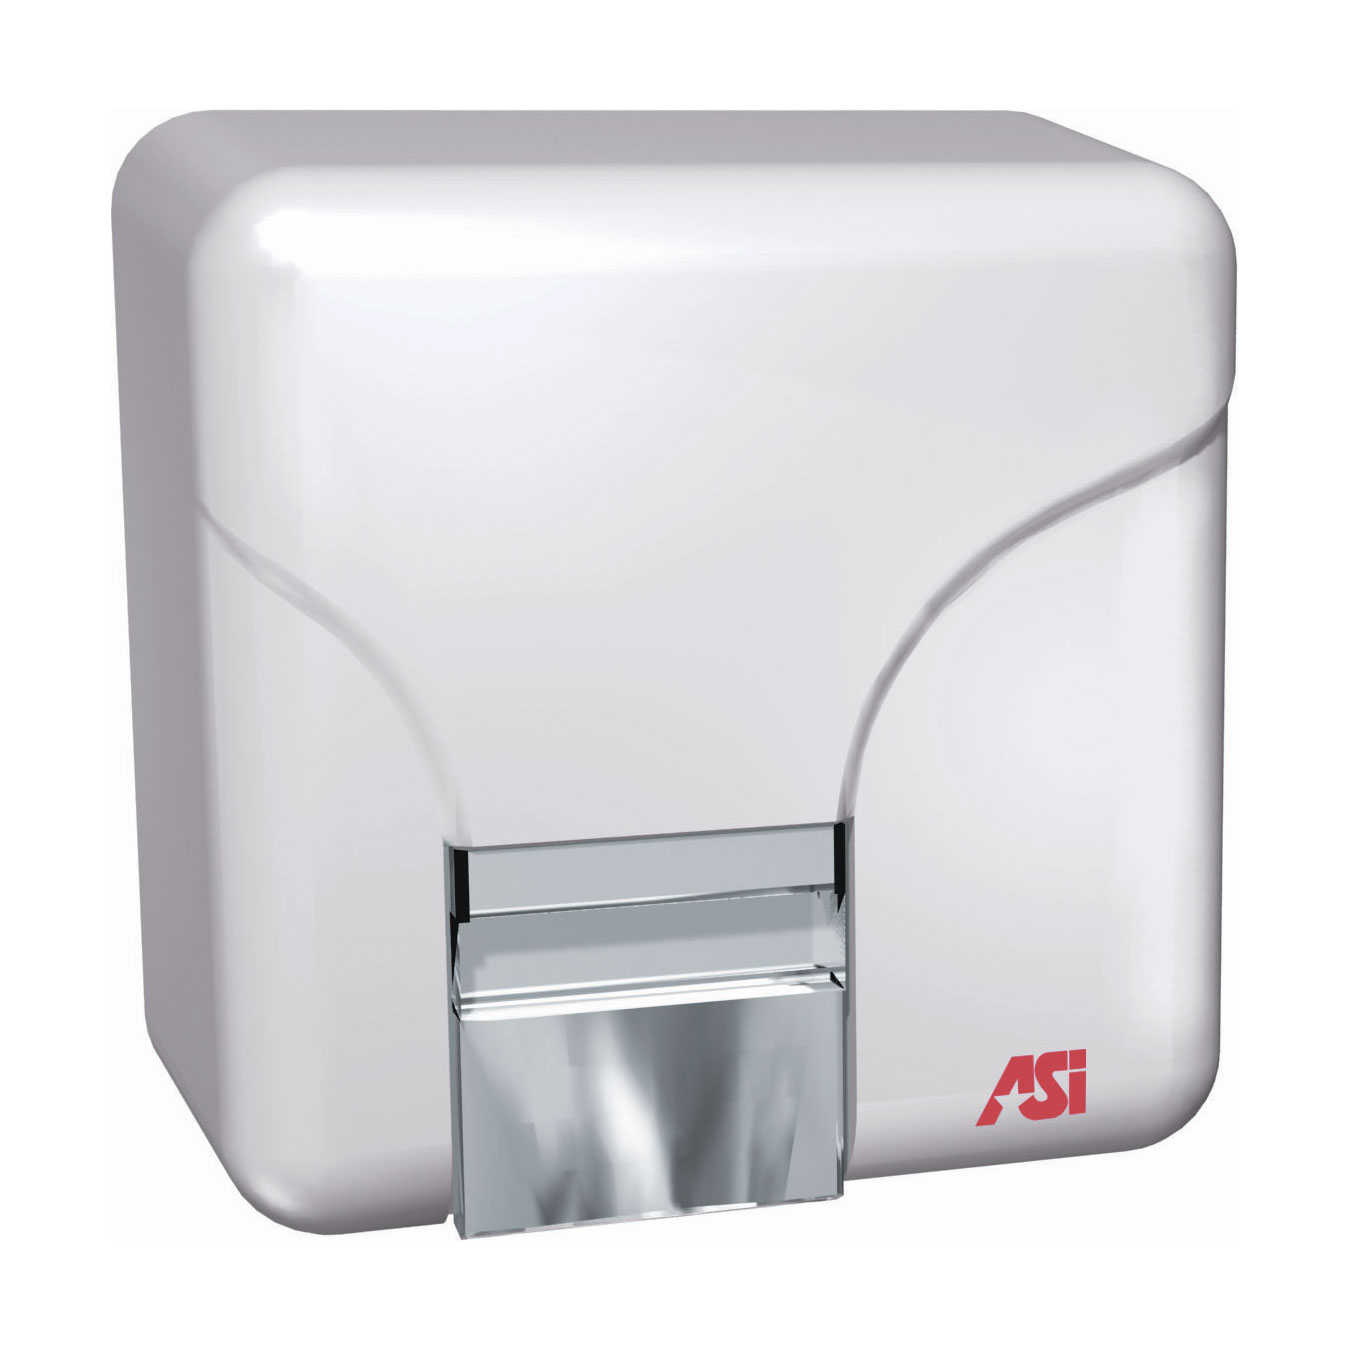 ASI PORCELAIR Surface Mounted Automatic Hand & Face Dryer